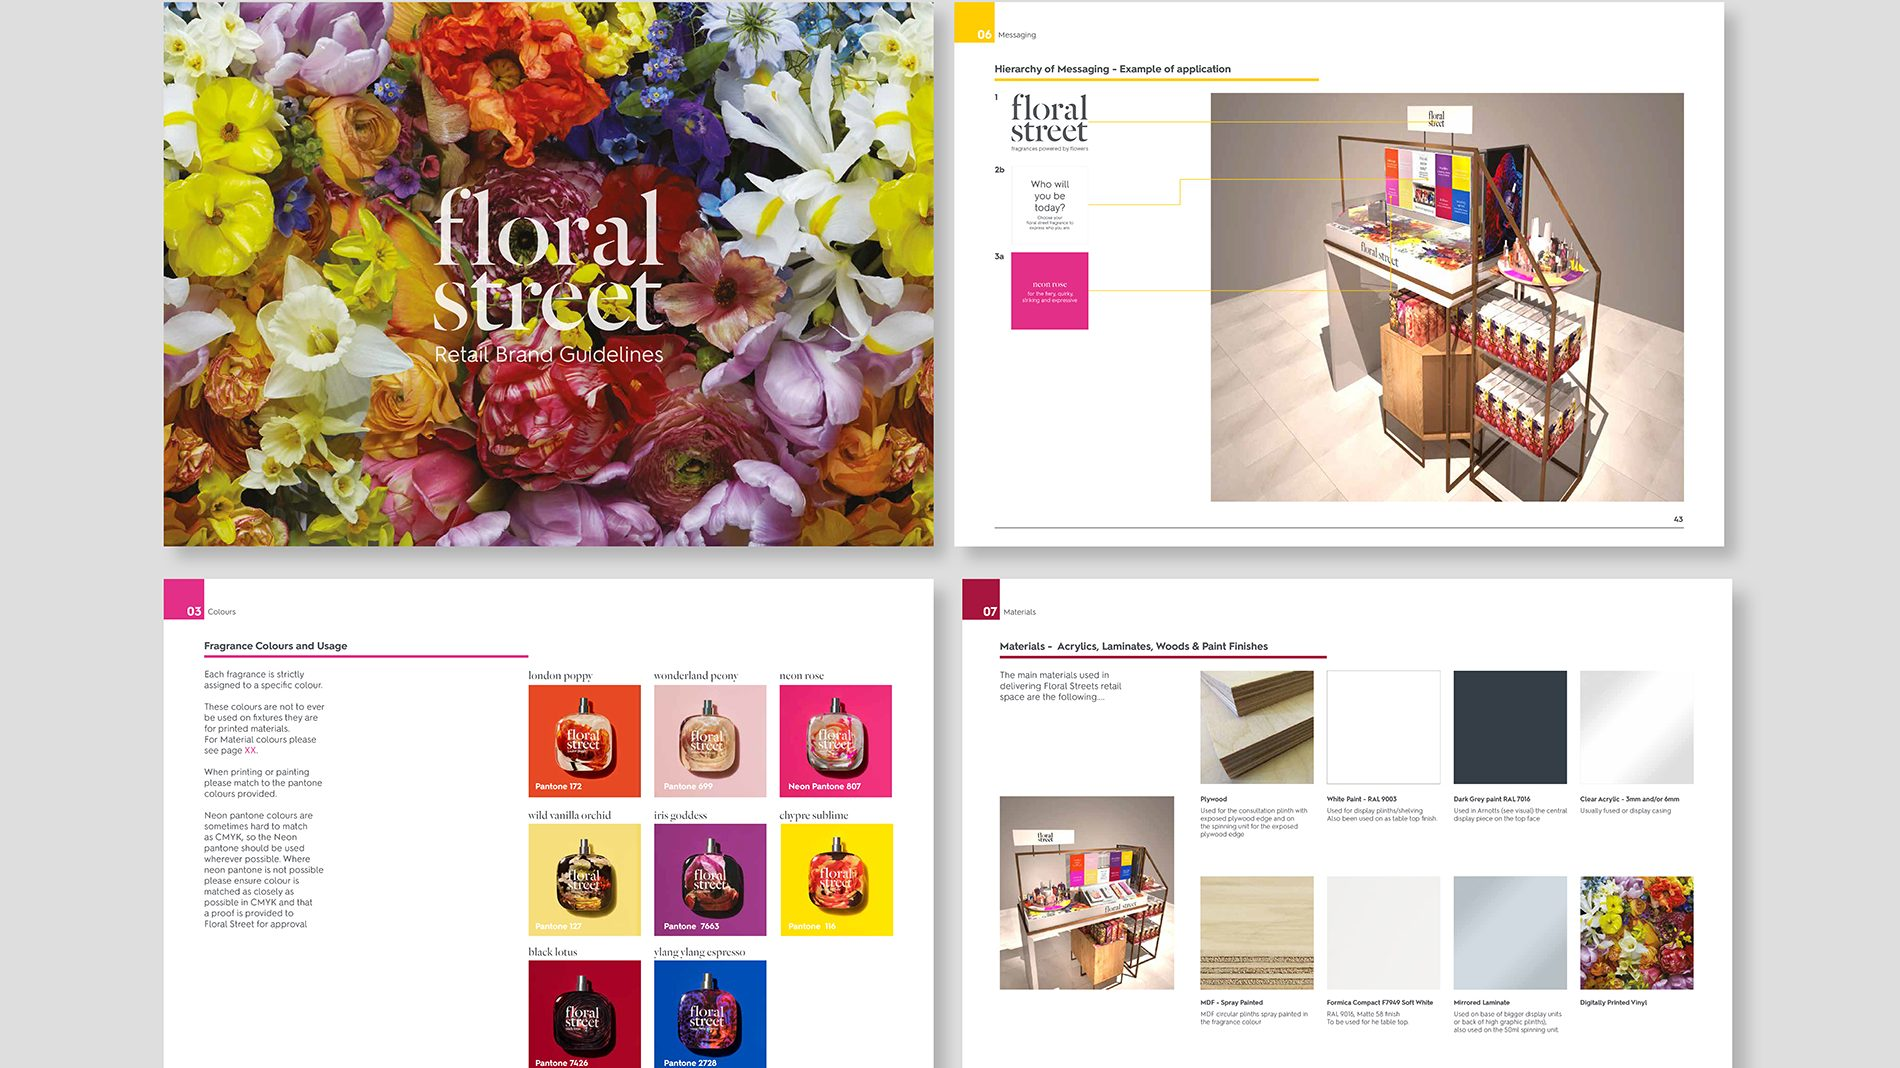 Flat-lay of 4 pages of Floral Street retail brand guidelines